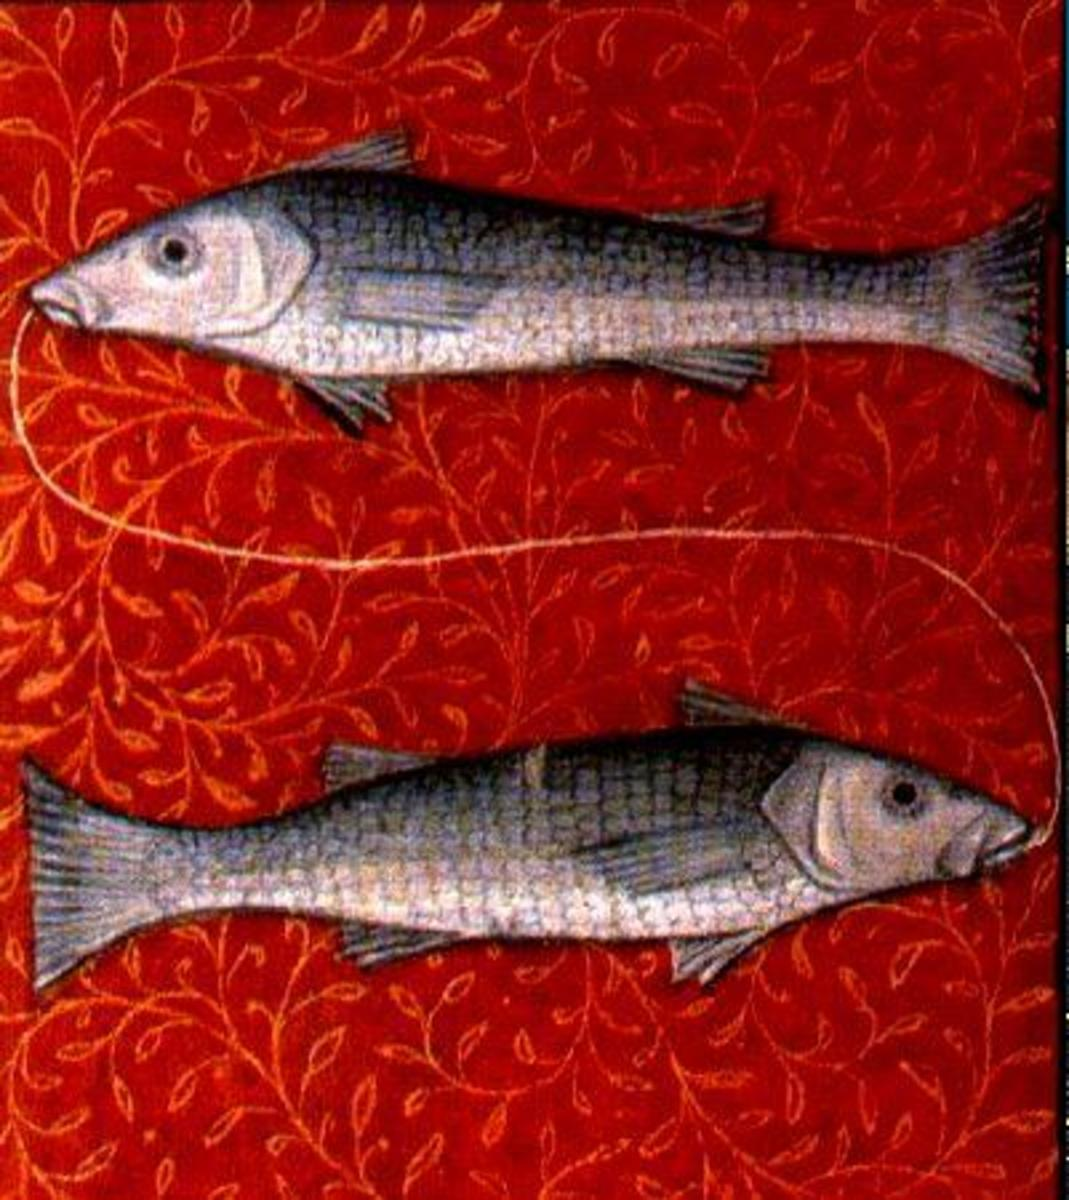 Pisces is represented by two fish.